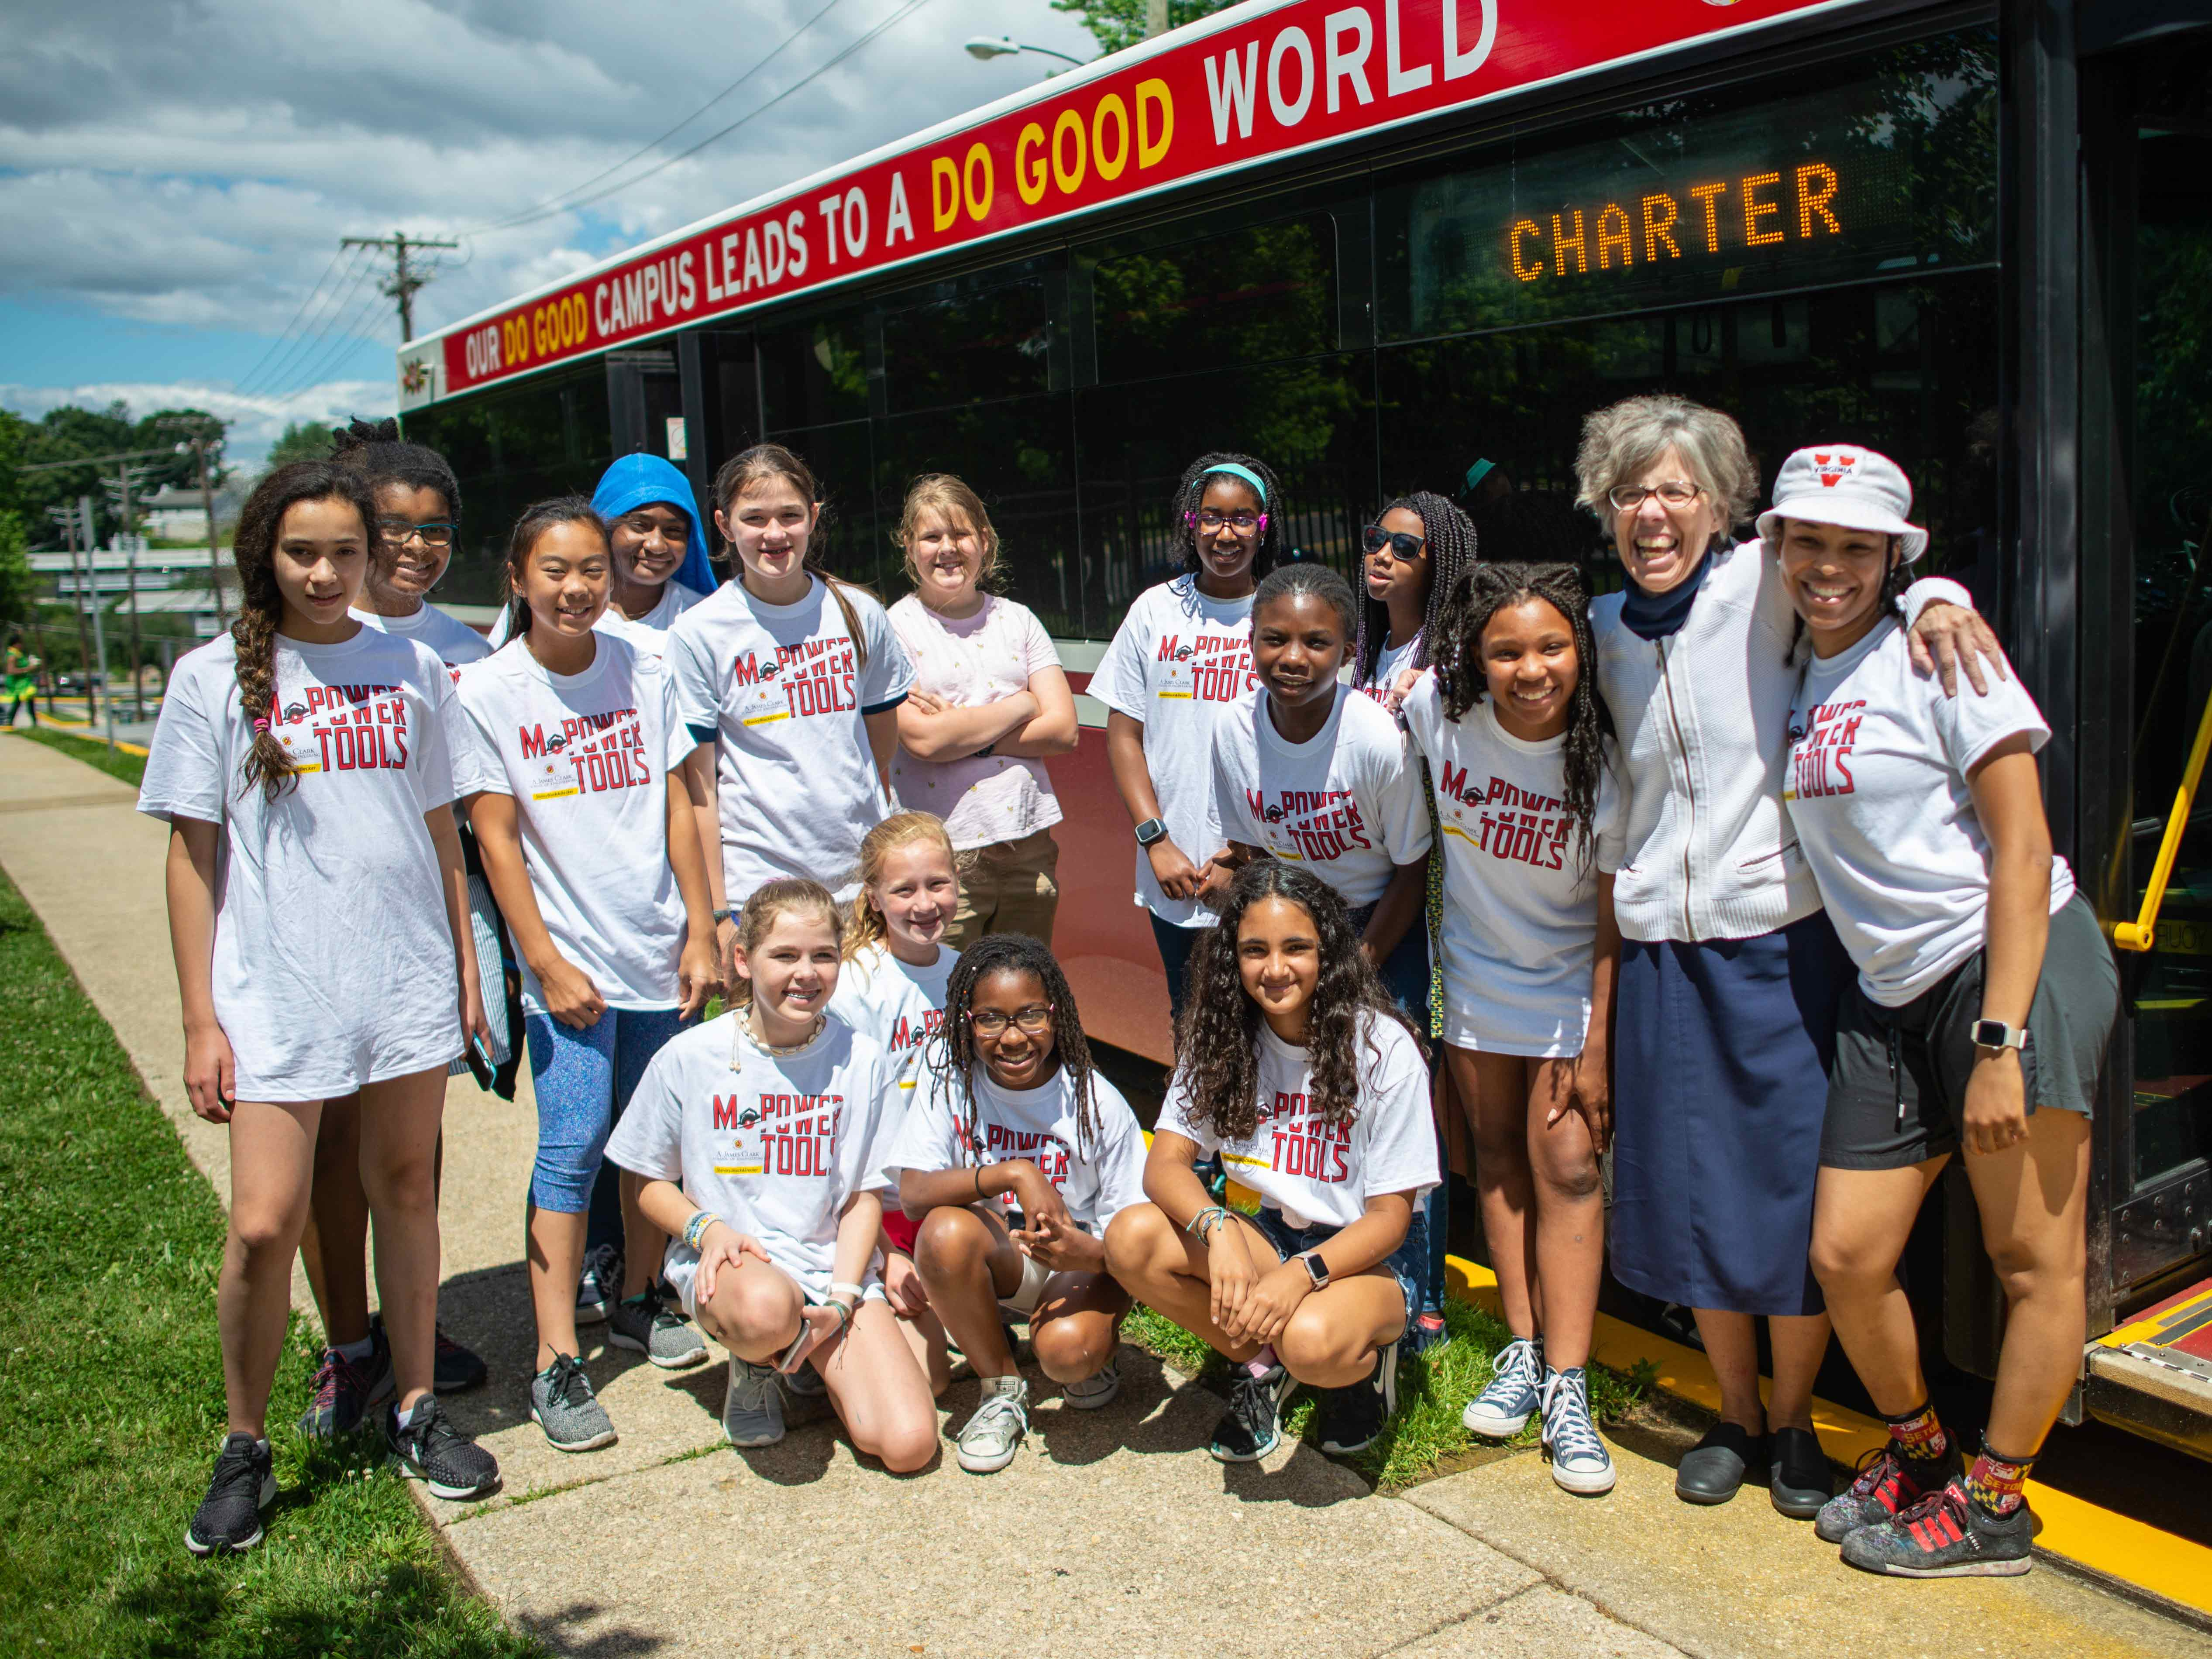 WIE Power Tool camp group in front of UMD bus